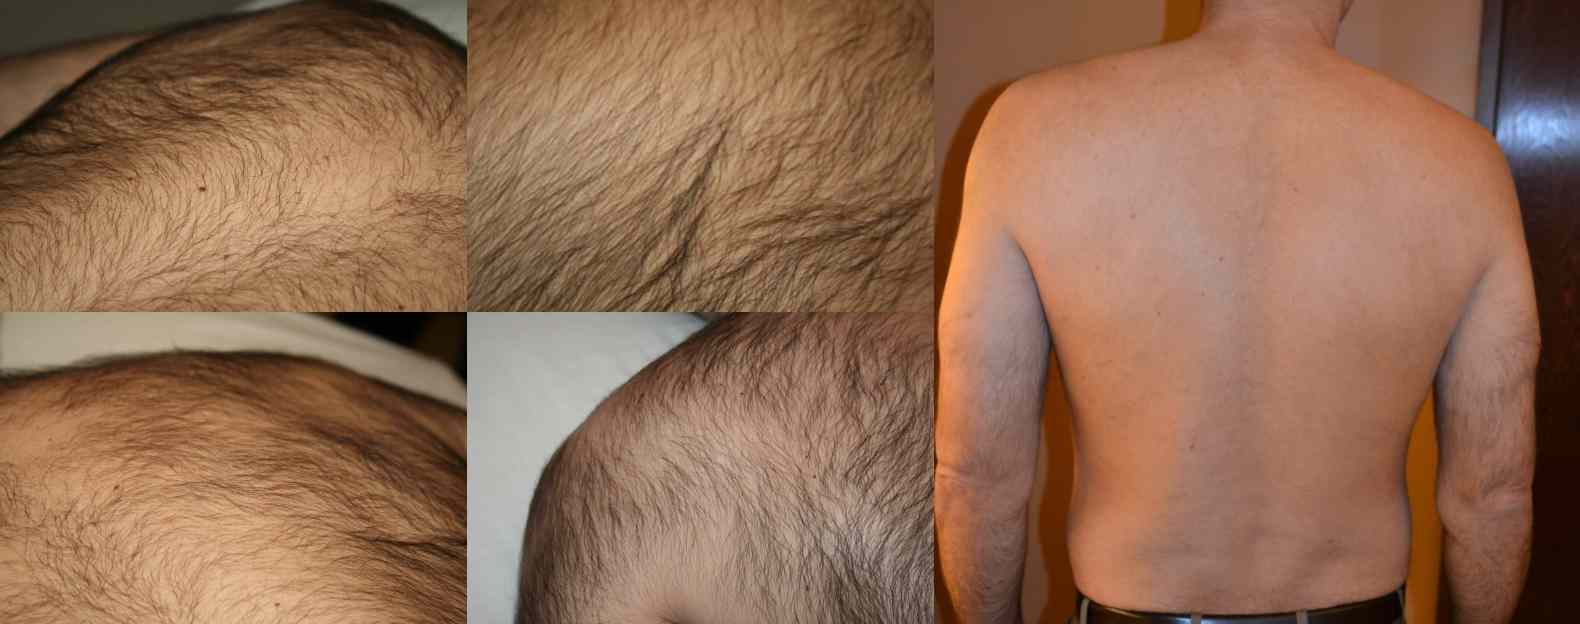 Laser Hair Removal For Men In New Jersey Ethos Spa Nj